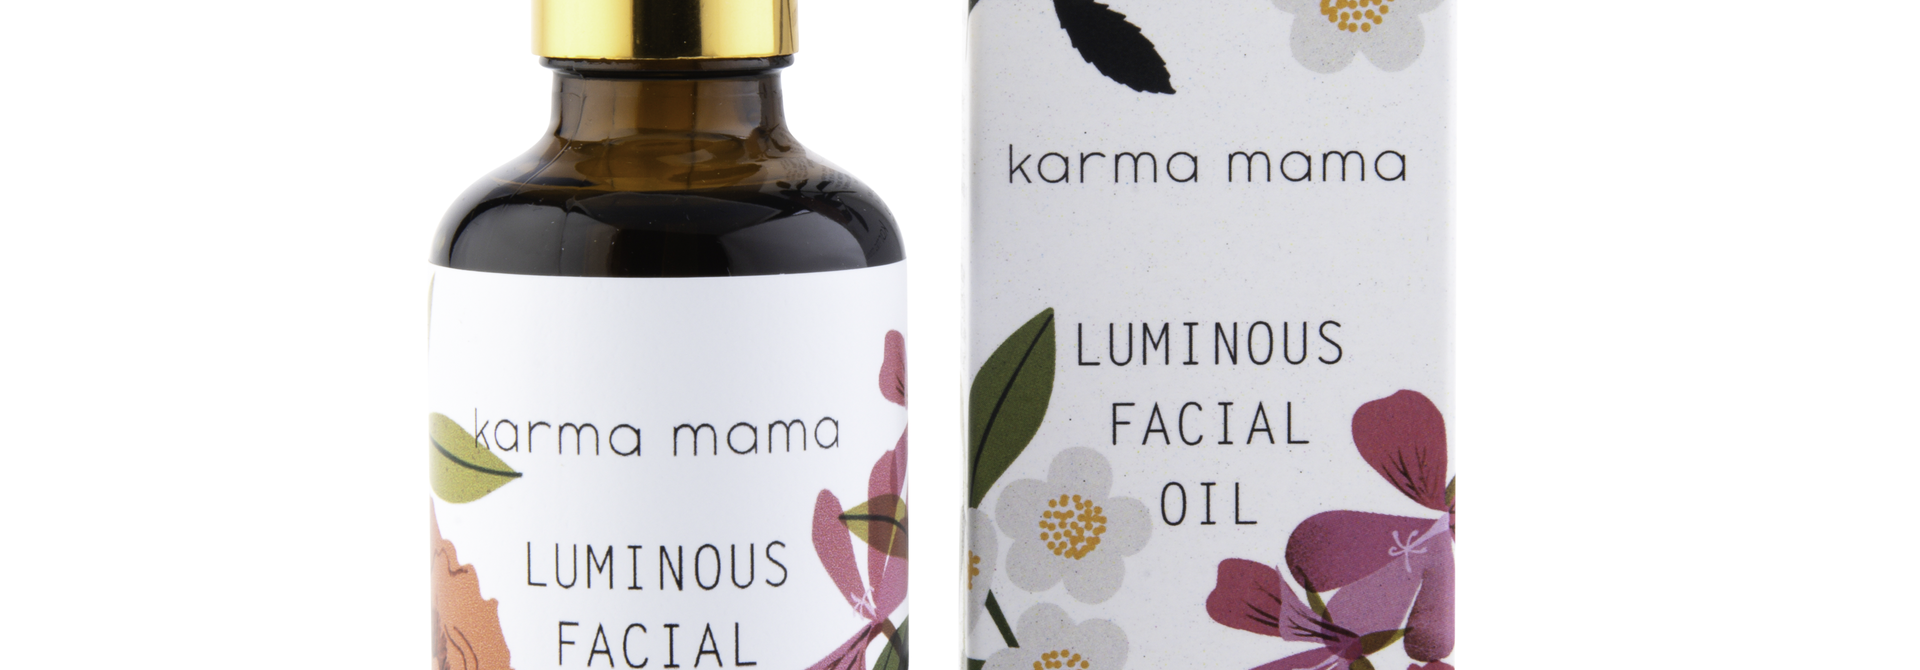 Luminous Facial Oil